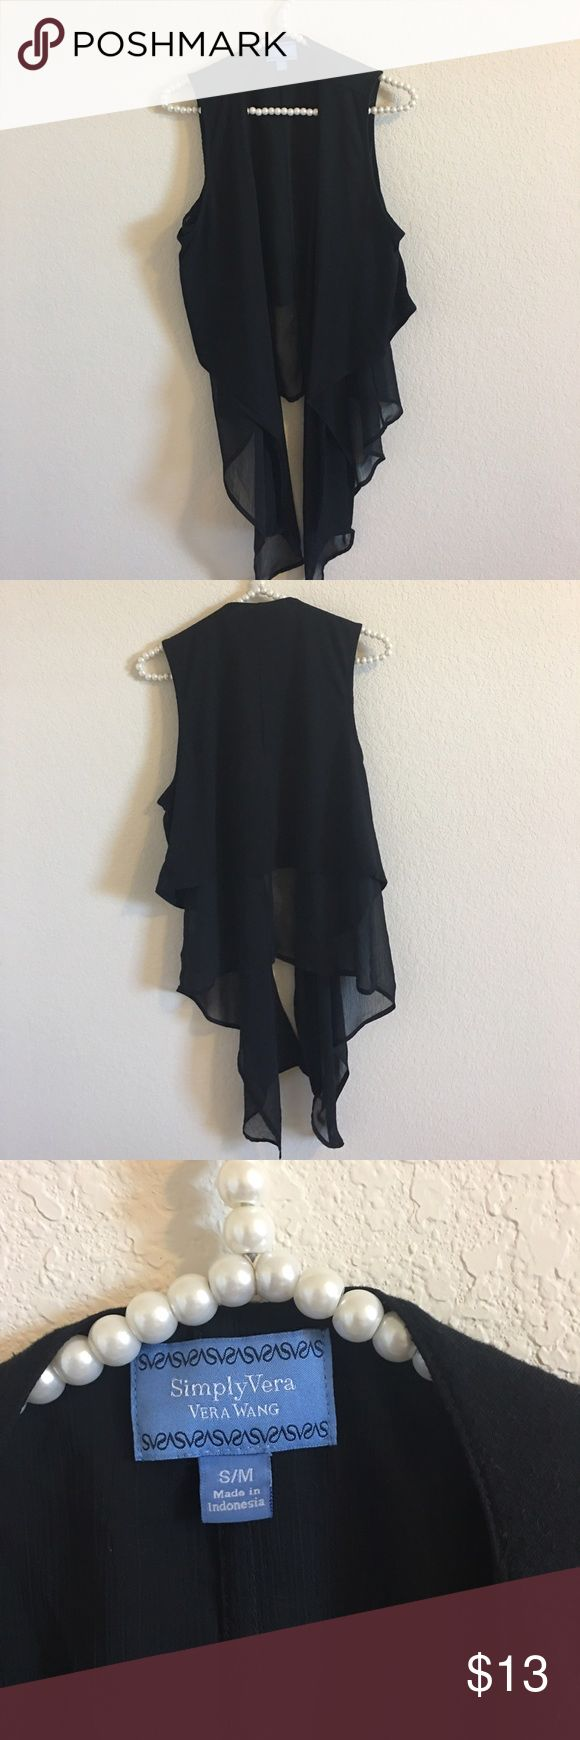 Simply Vera flowy vest Simply Vera by Vera Wang flowy light-weight cover up. Great to dress up a t-shirt or tank top and jeans. Great condition, no visible damage. Size Small/Medium. Simply Vera Vera Wang Tops Tank Tops